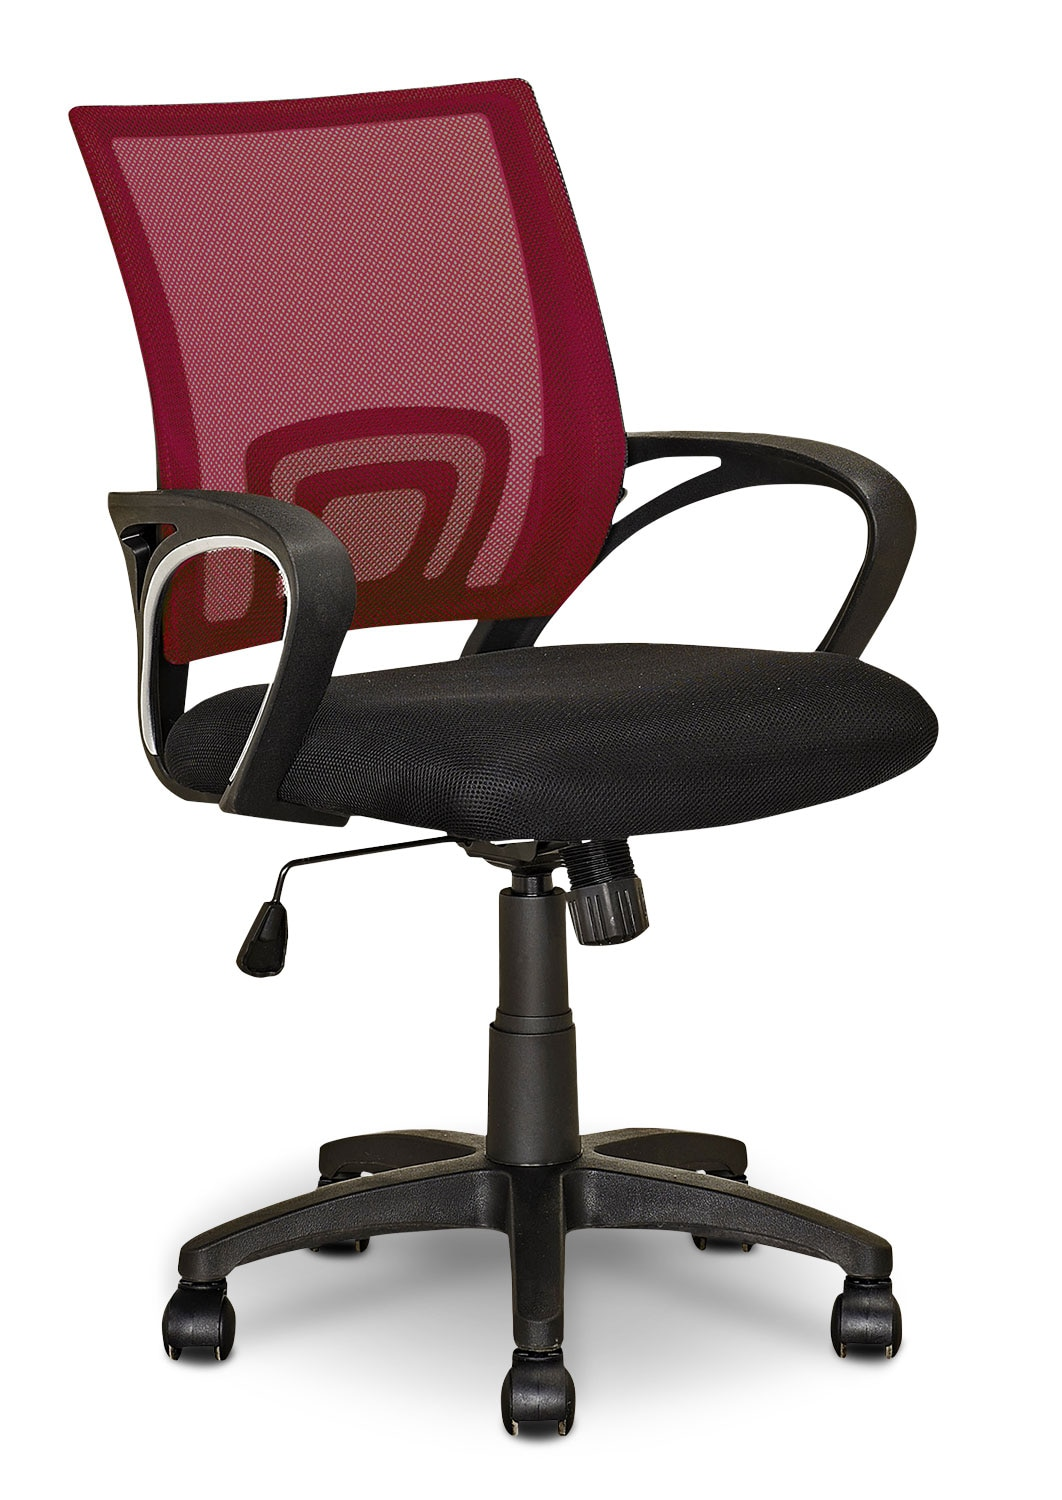 Loft Mesh Office Chair – Dark Red